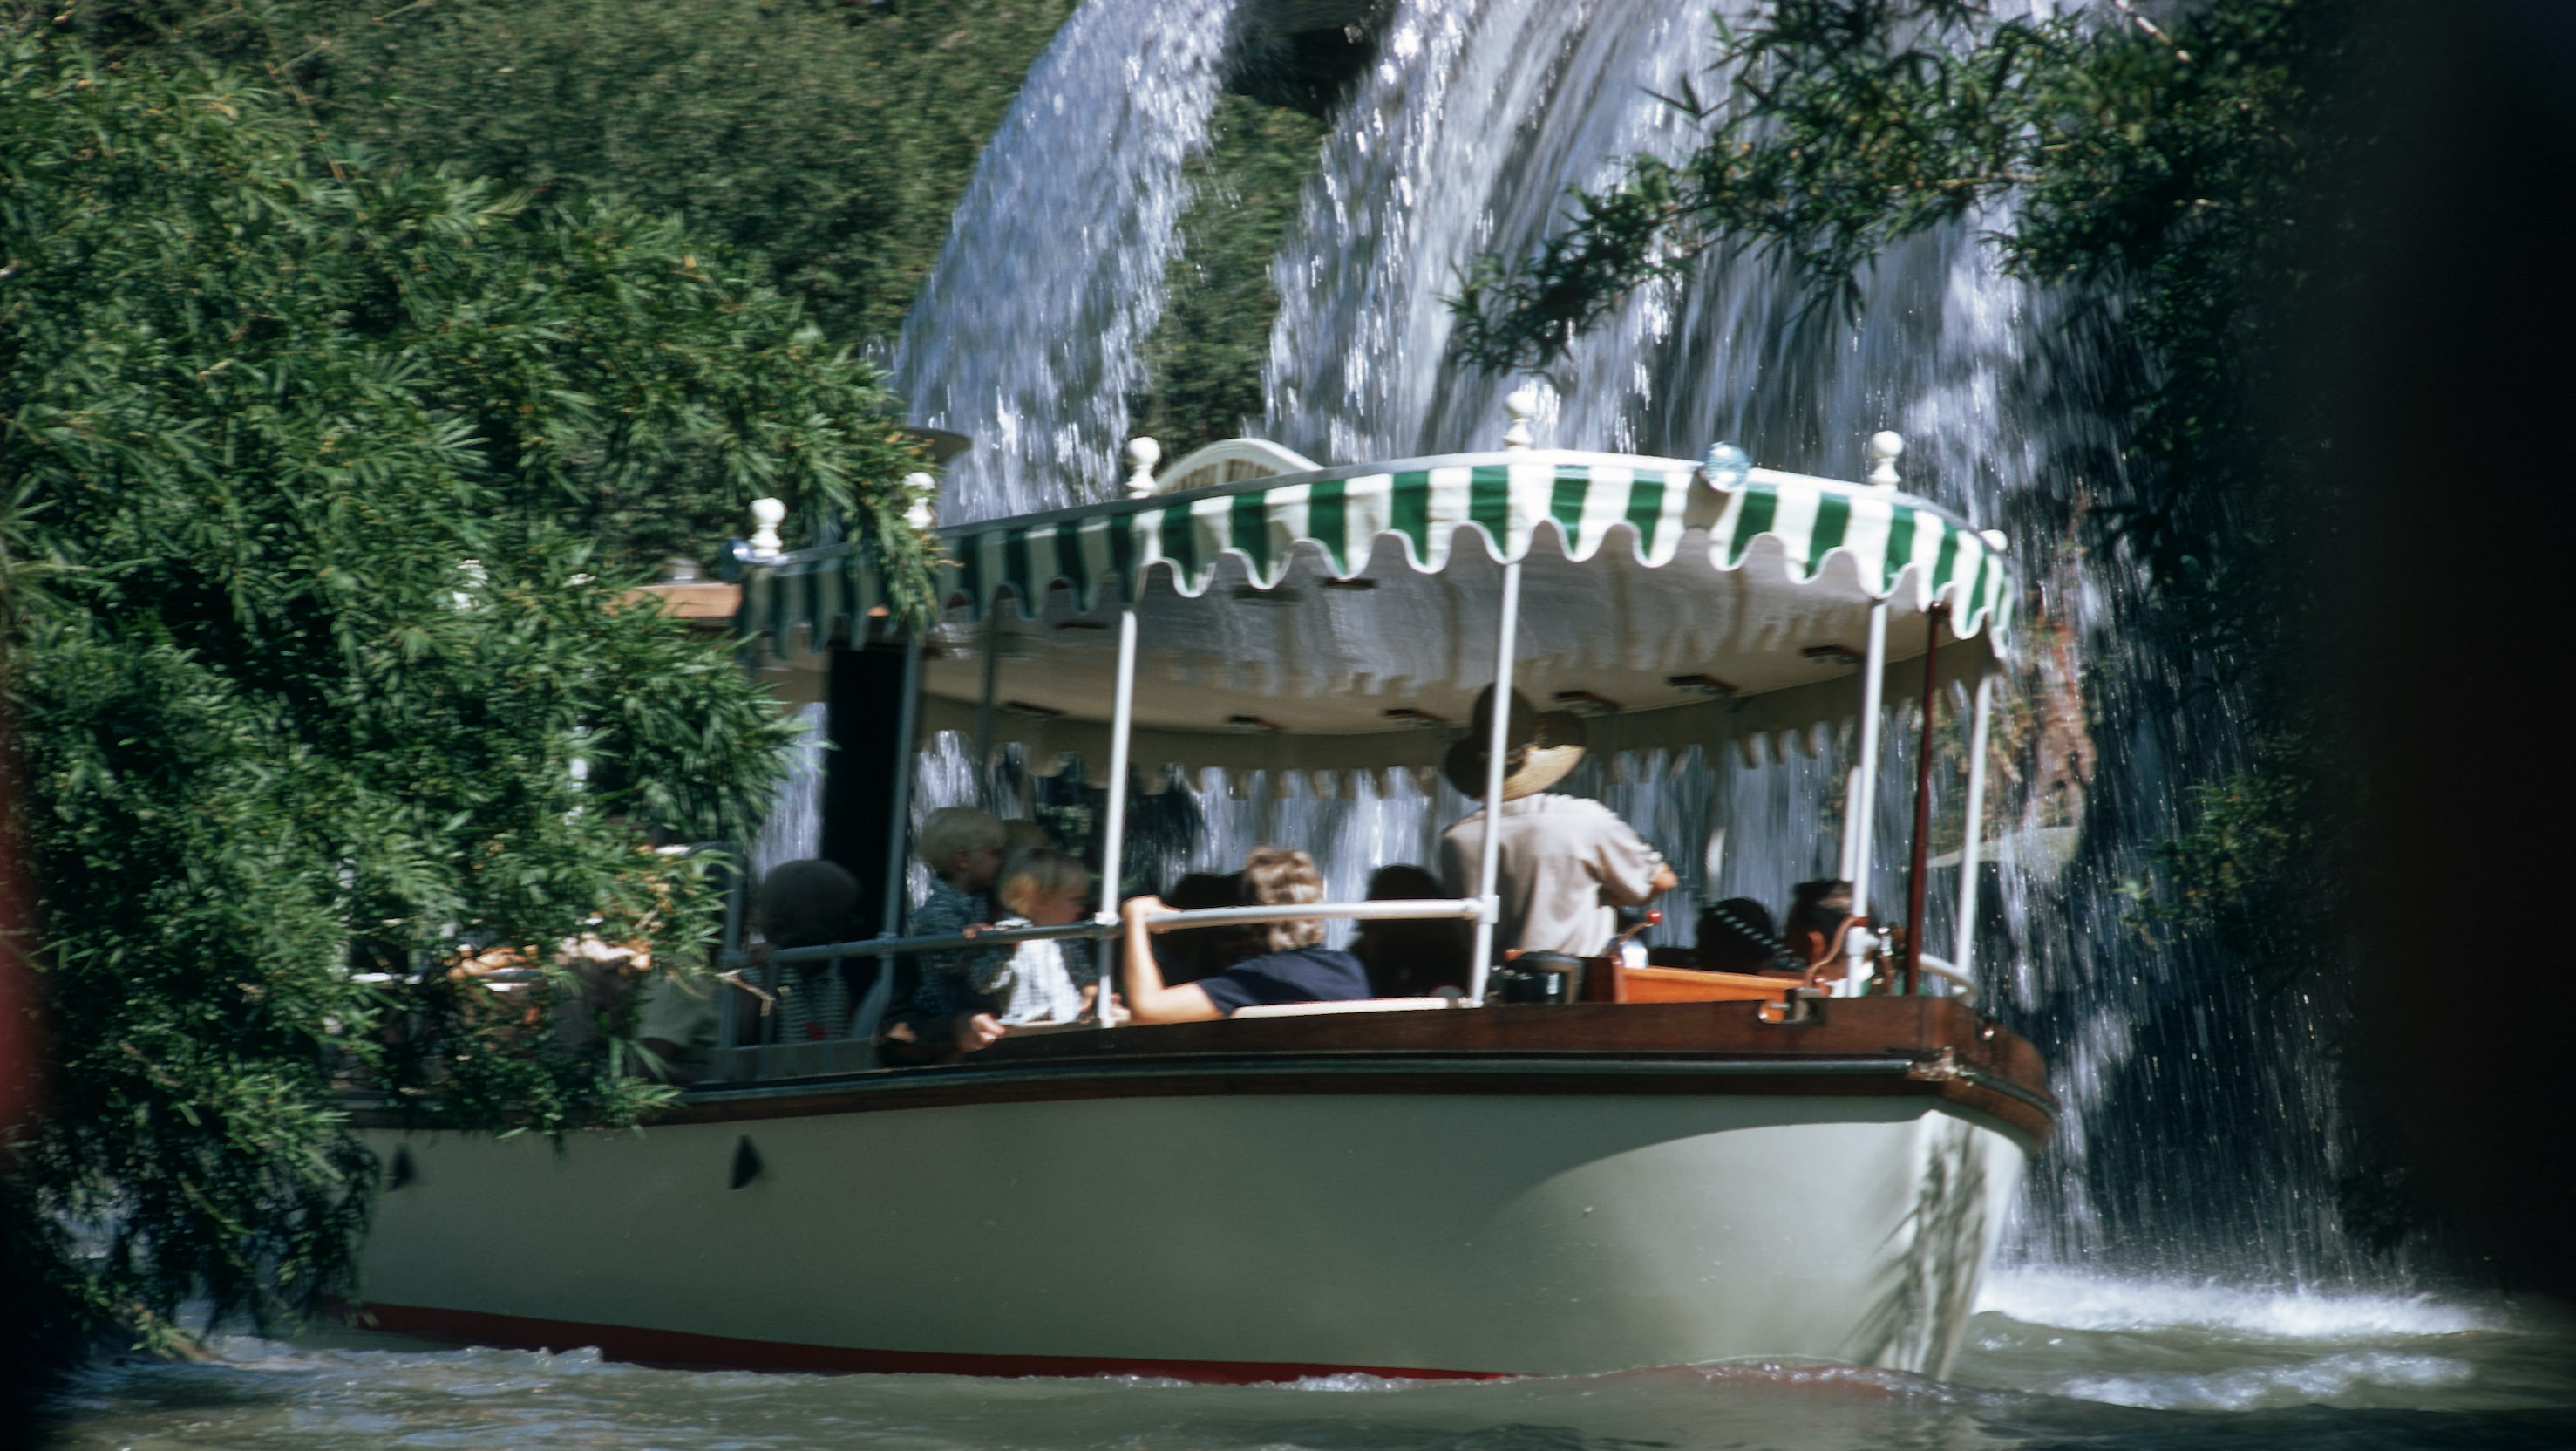 Image of a boat from the Jungle Cruise ride.